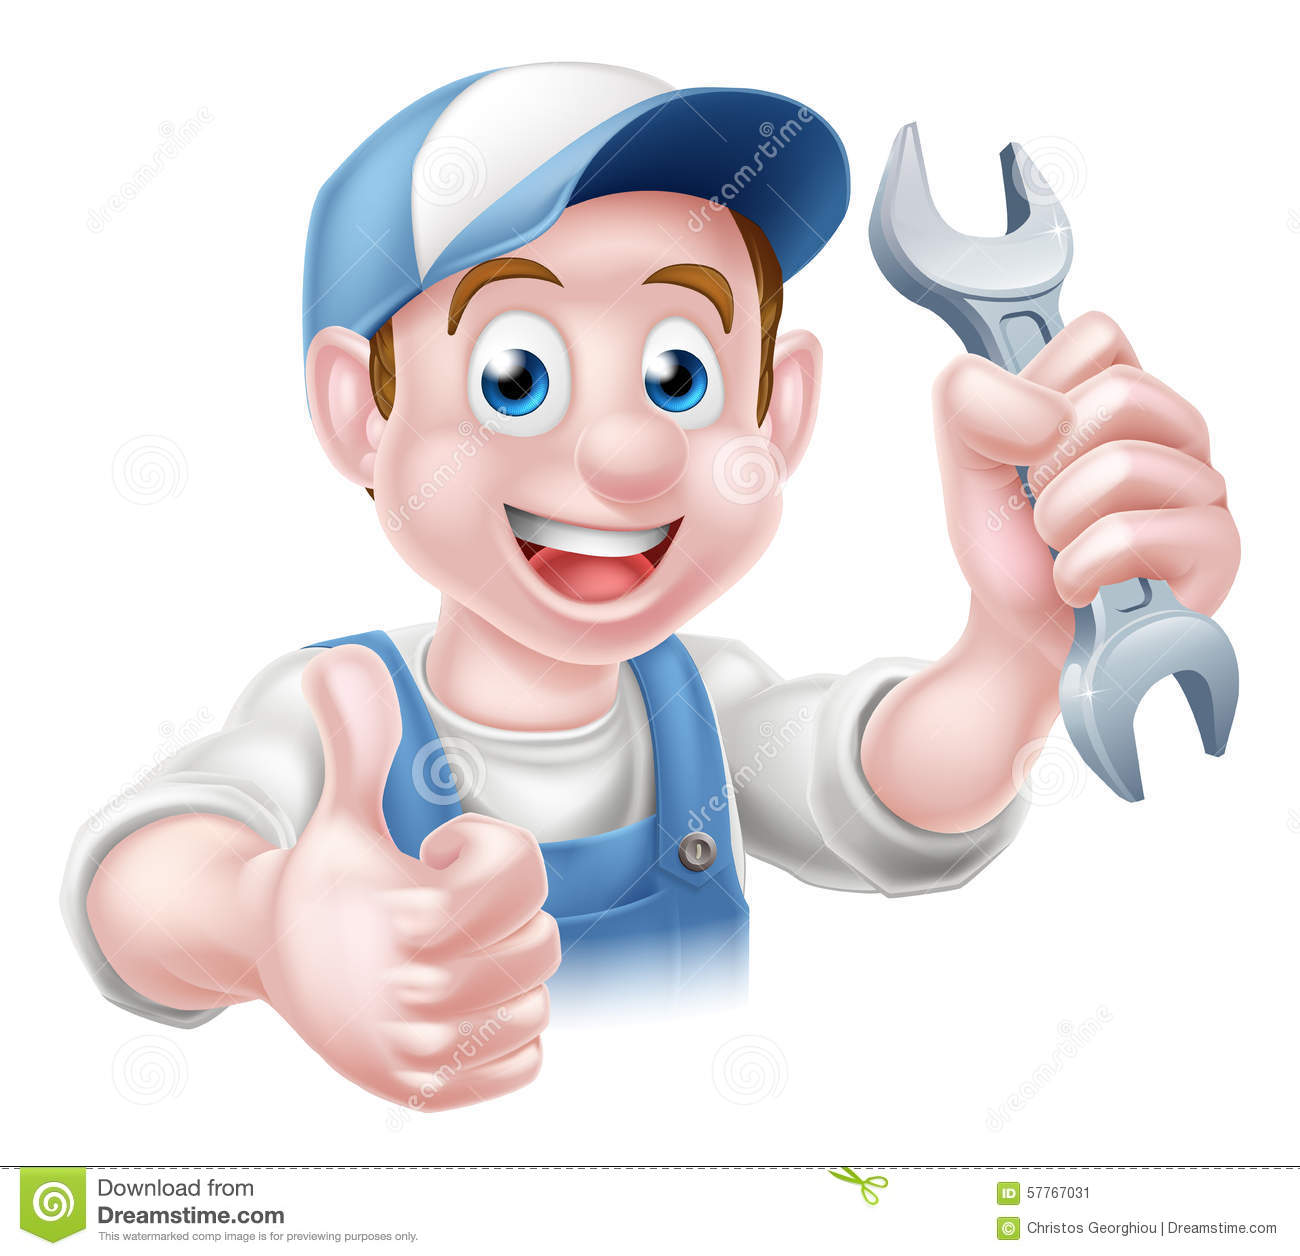 Stock Illustration Mechanic Plumber Cartoon Man Auto Repair Service Handyman Worker Giving Thumbs Up Holding Spanner Image57767031 on Map Clipart